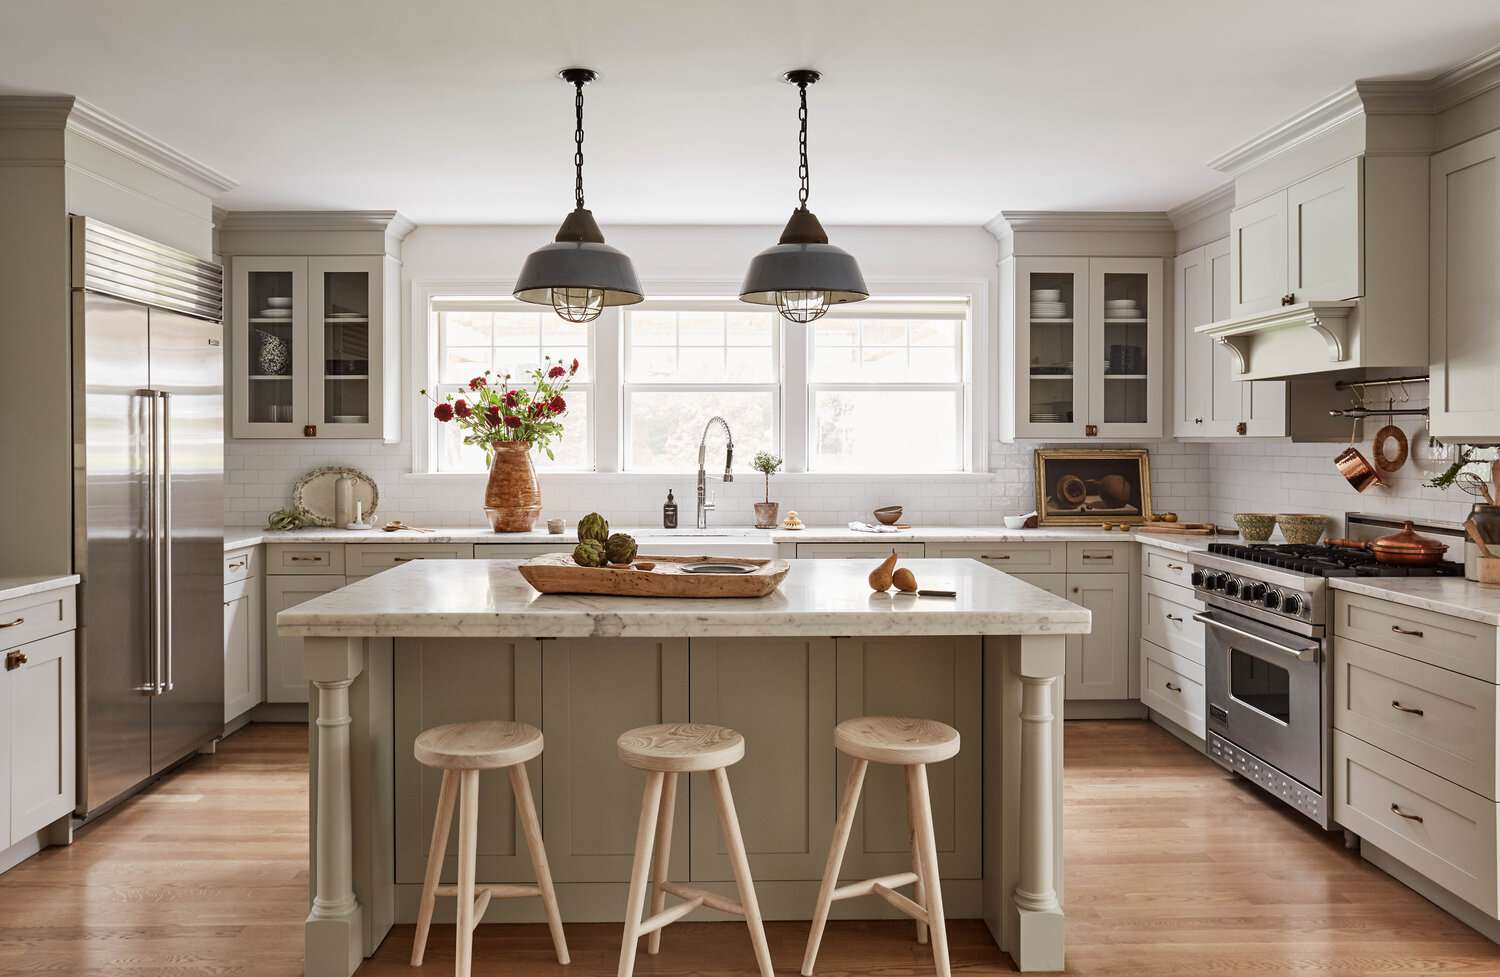 A kitchen with light gray cabinets